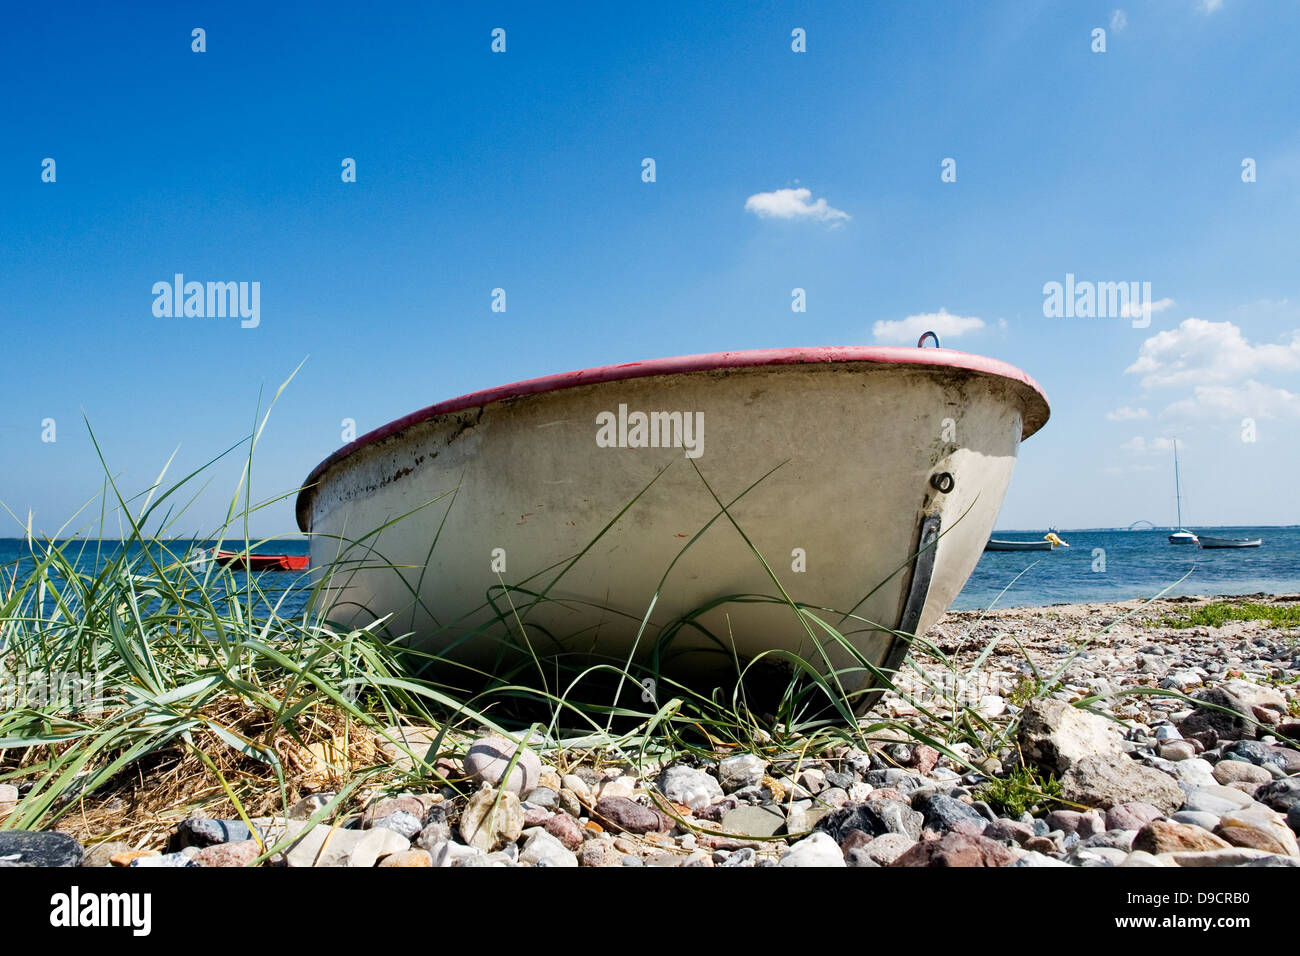 Oar boat on the beach - Stock Image